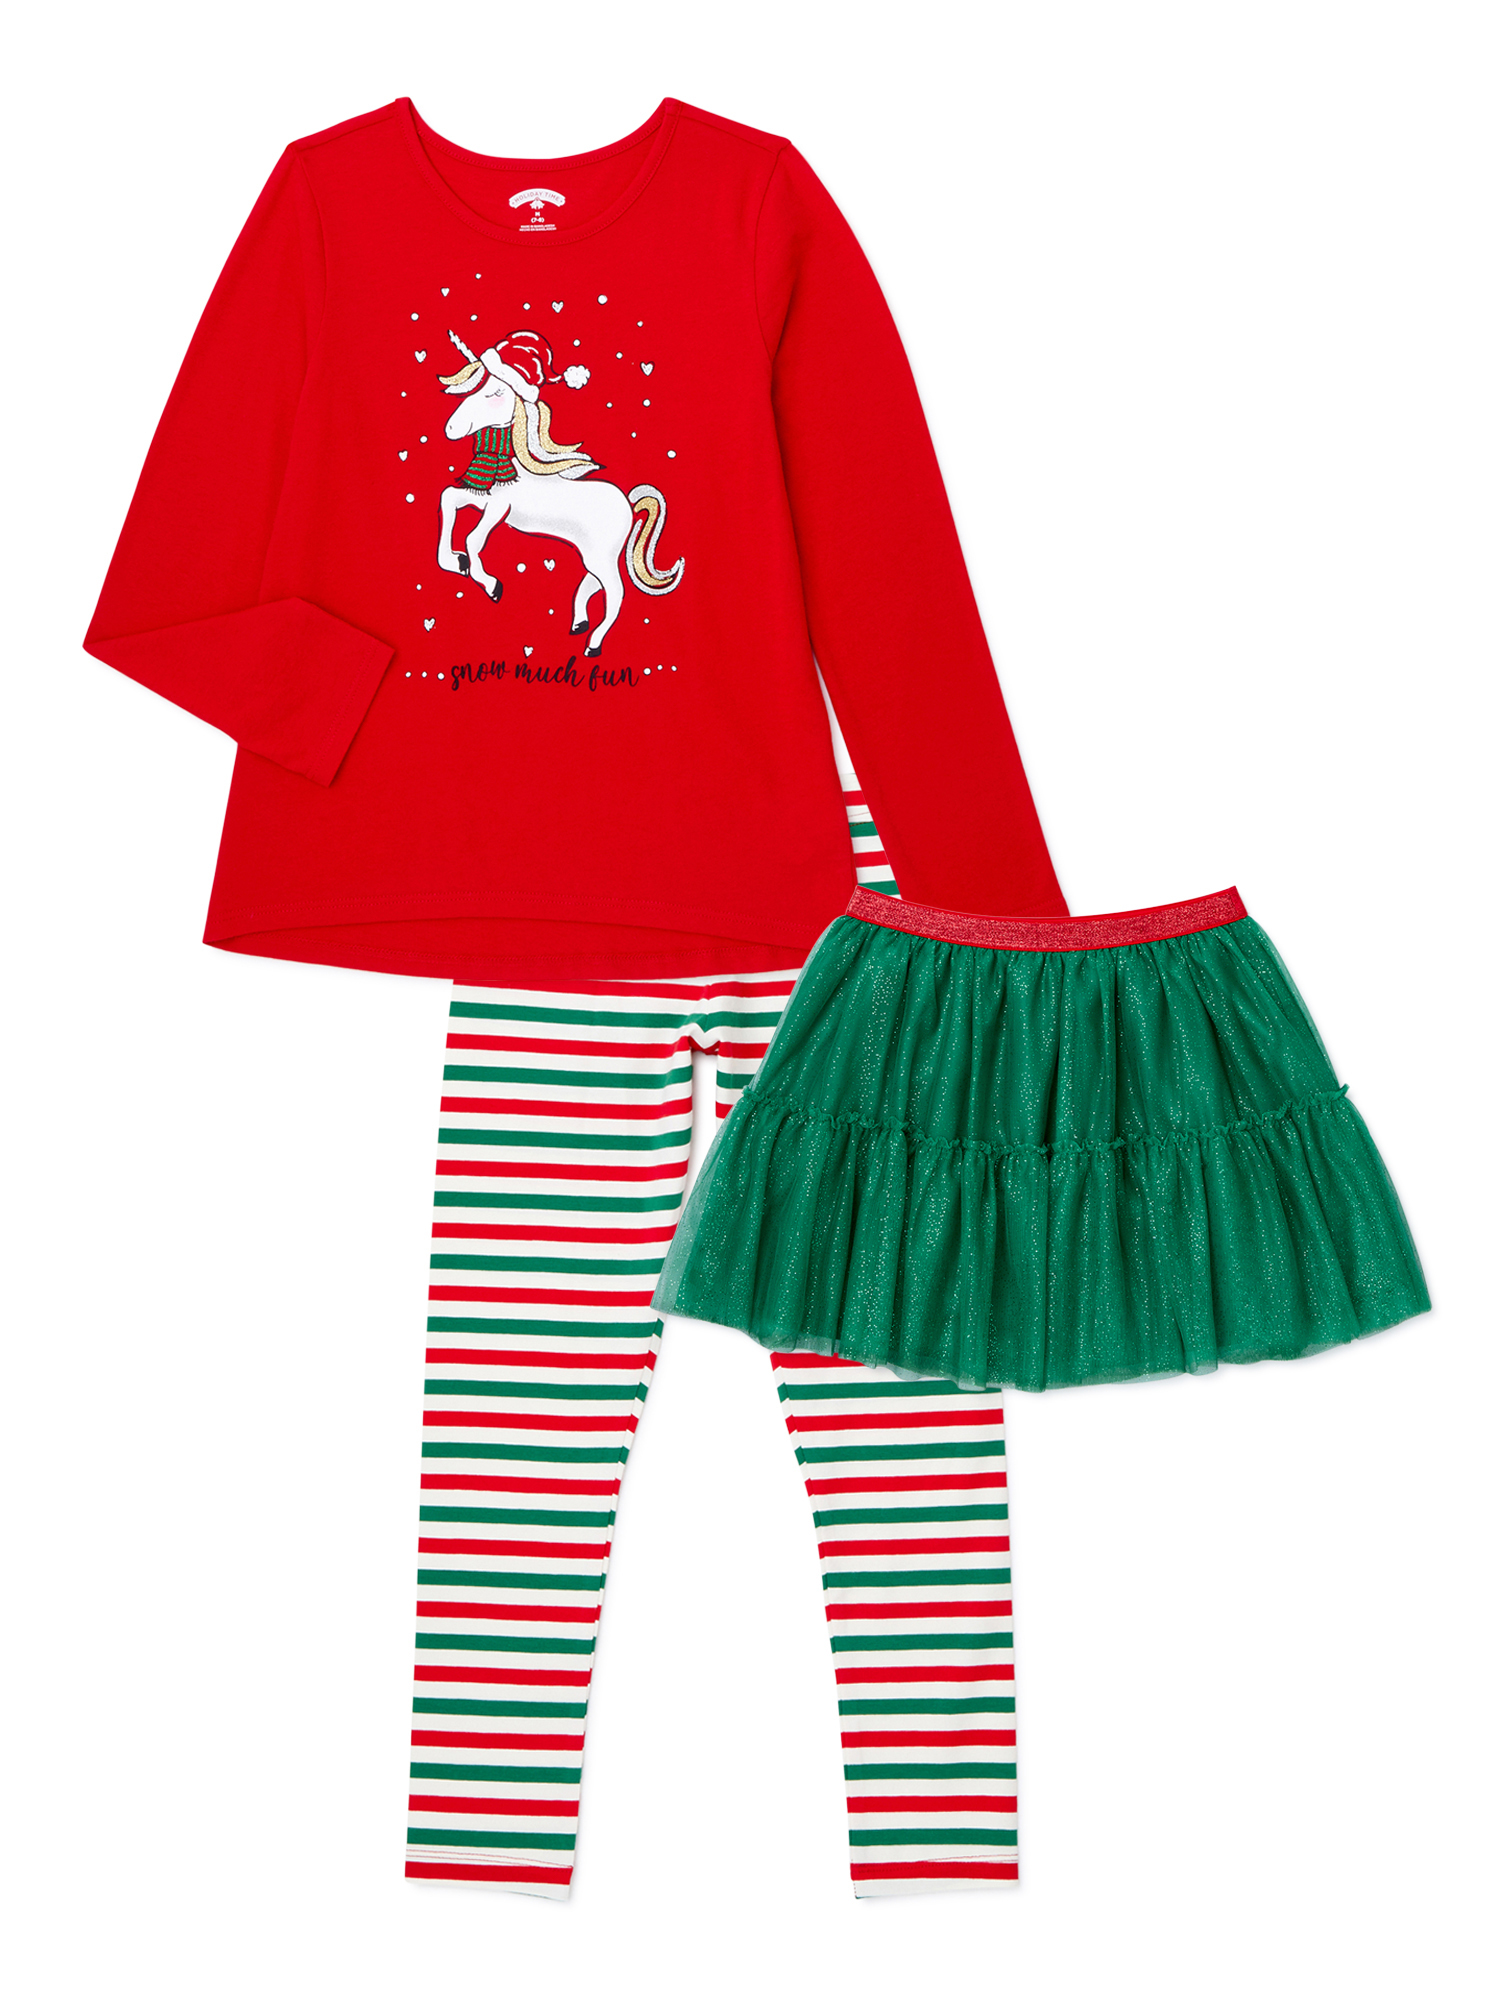 Christmas toddler girl shirt 2T 3T 4T 5T red gold trim Shine Bright Reindeer